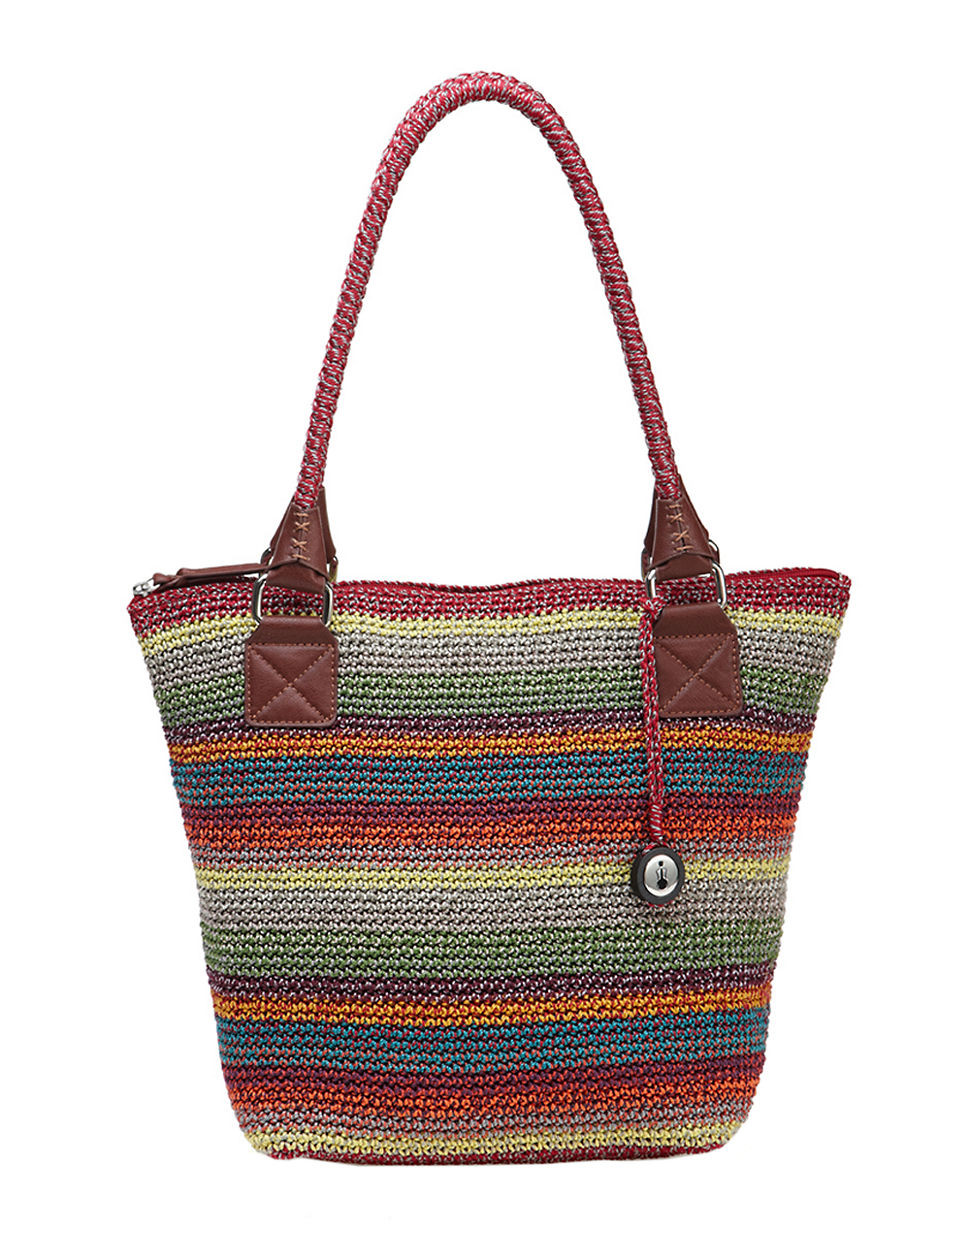 New the Sak Cambria Crochet tote In Brown Gypsy Stripe the Sak Crochet Bags Of Adorable 41 Ideas the Sak Crochet Bags